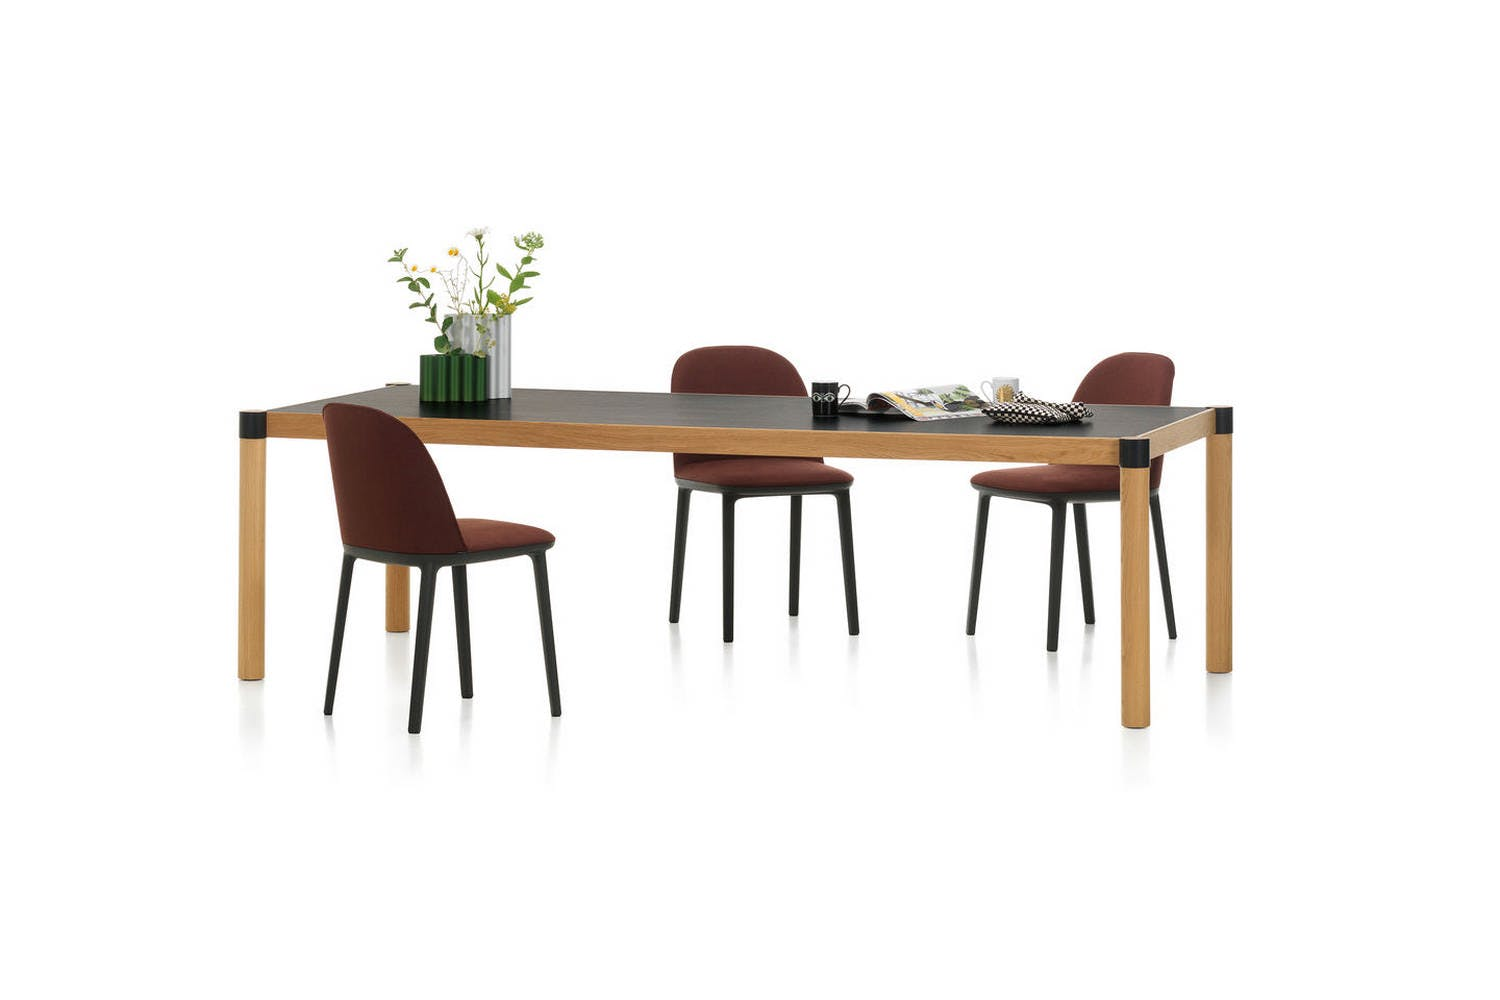 Cyl Table By Ronan Erwan Bouroullec For Vitra Space Furniture